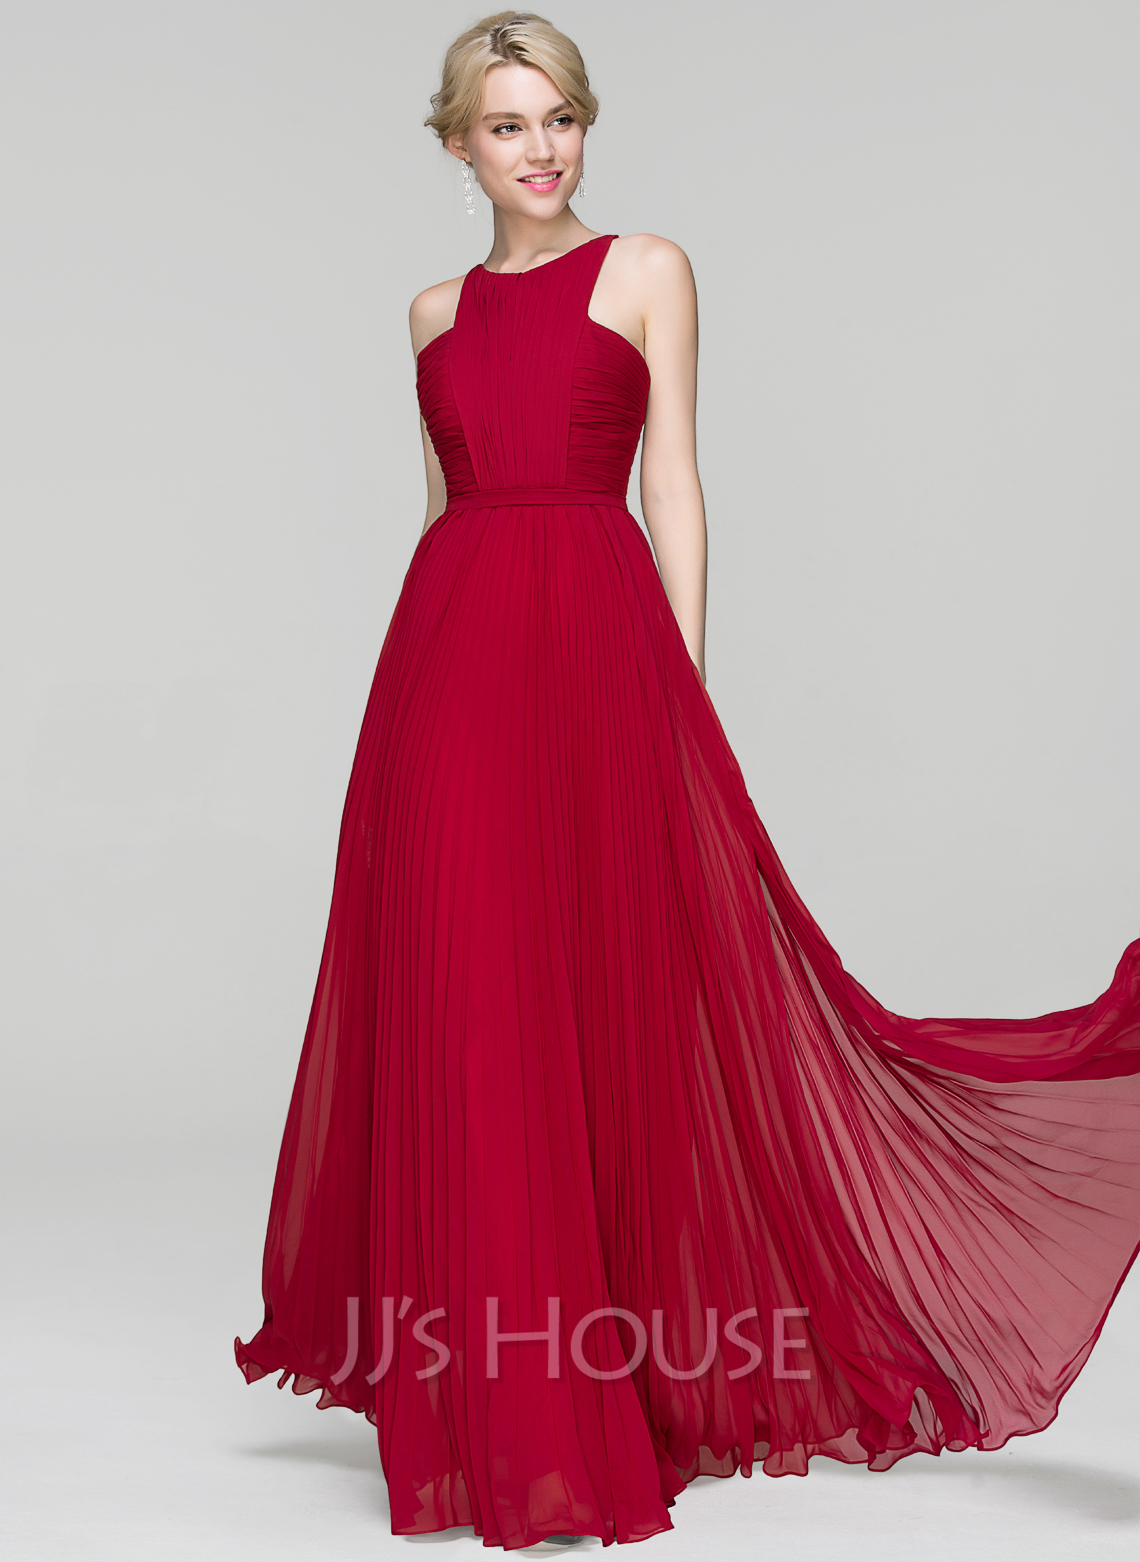 A-Line Scoop Neck Floor-Length Chiffon Prom Dresses With Split Front Pleated